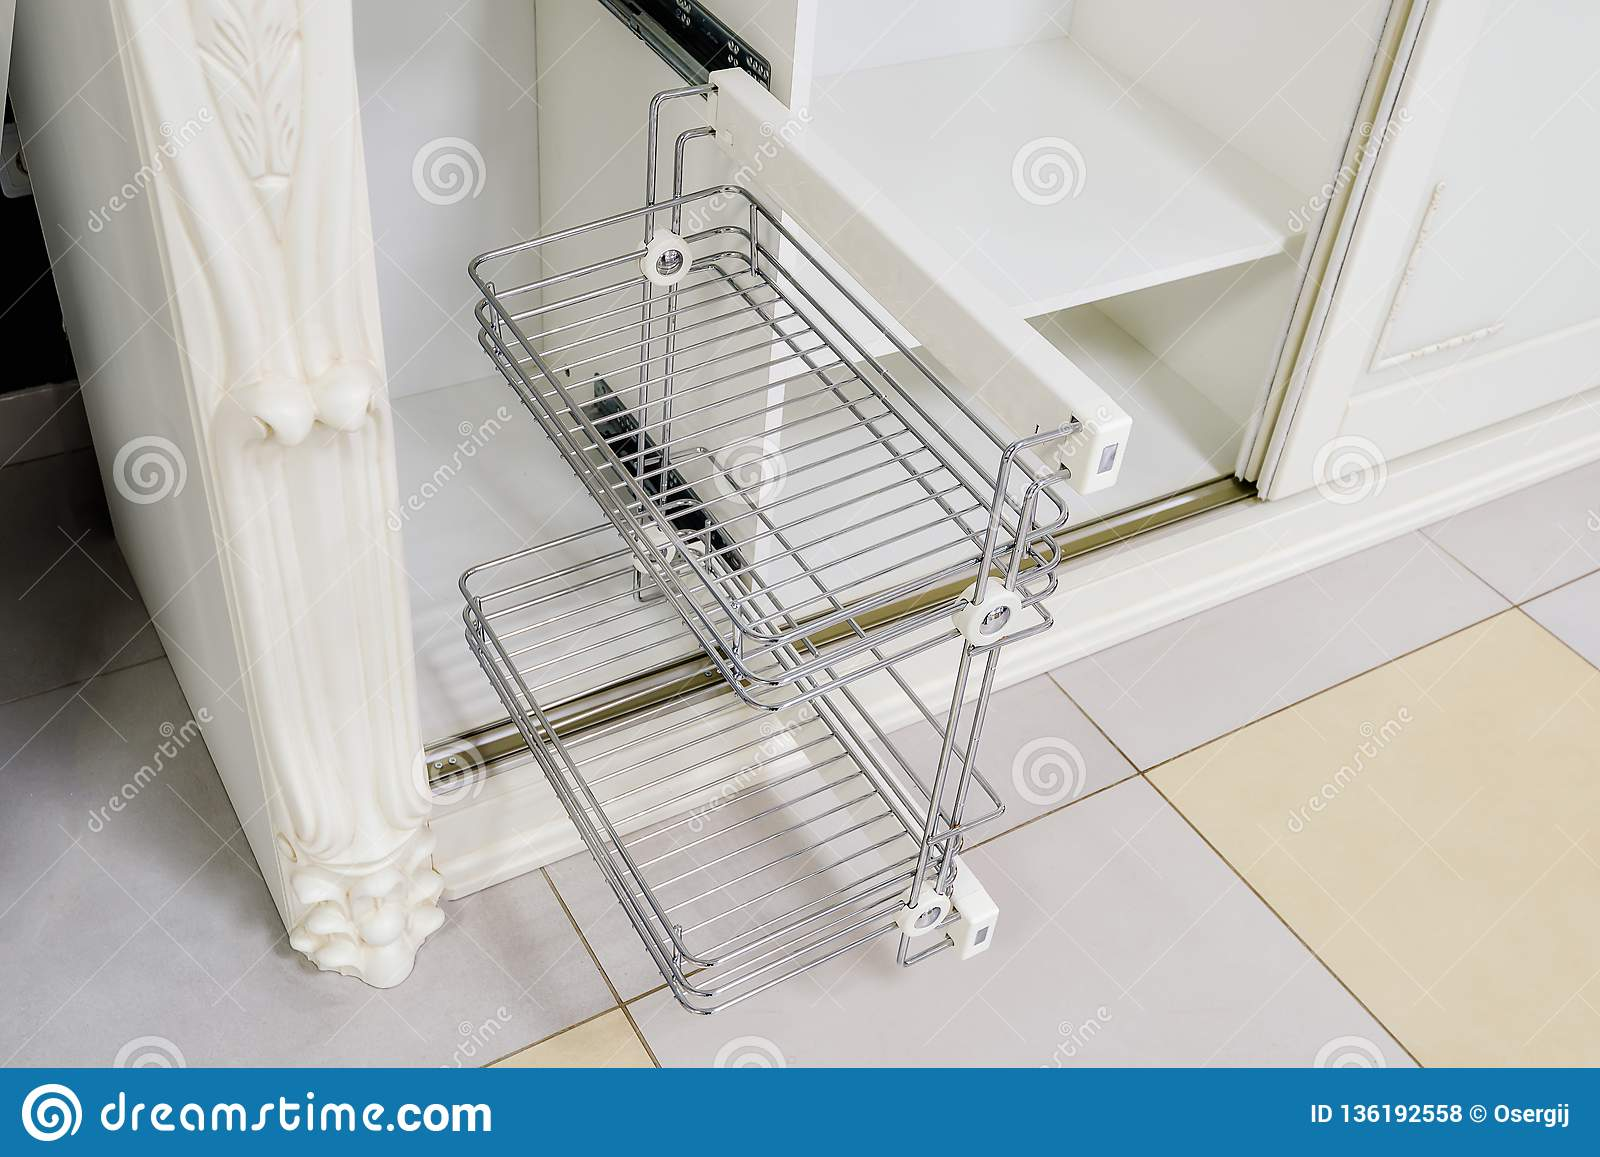 Accessory for storing shoes in the wardrobe